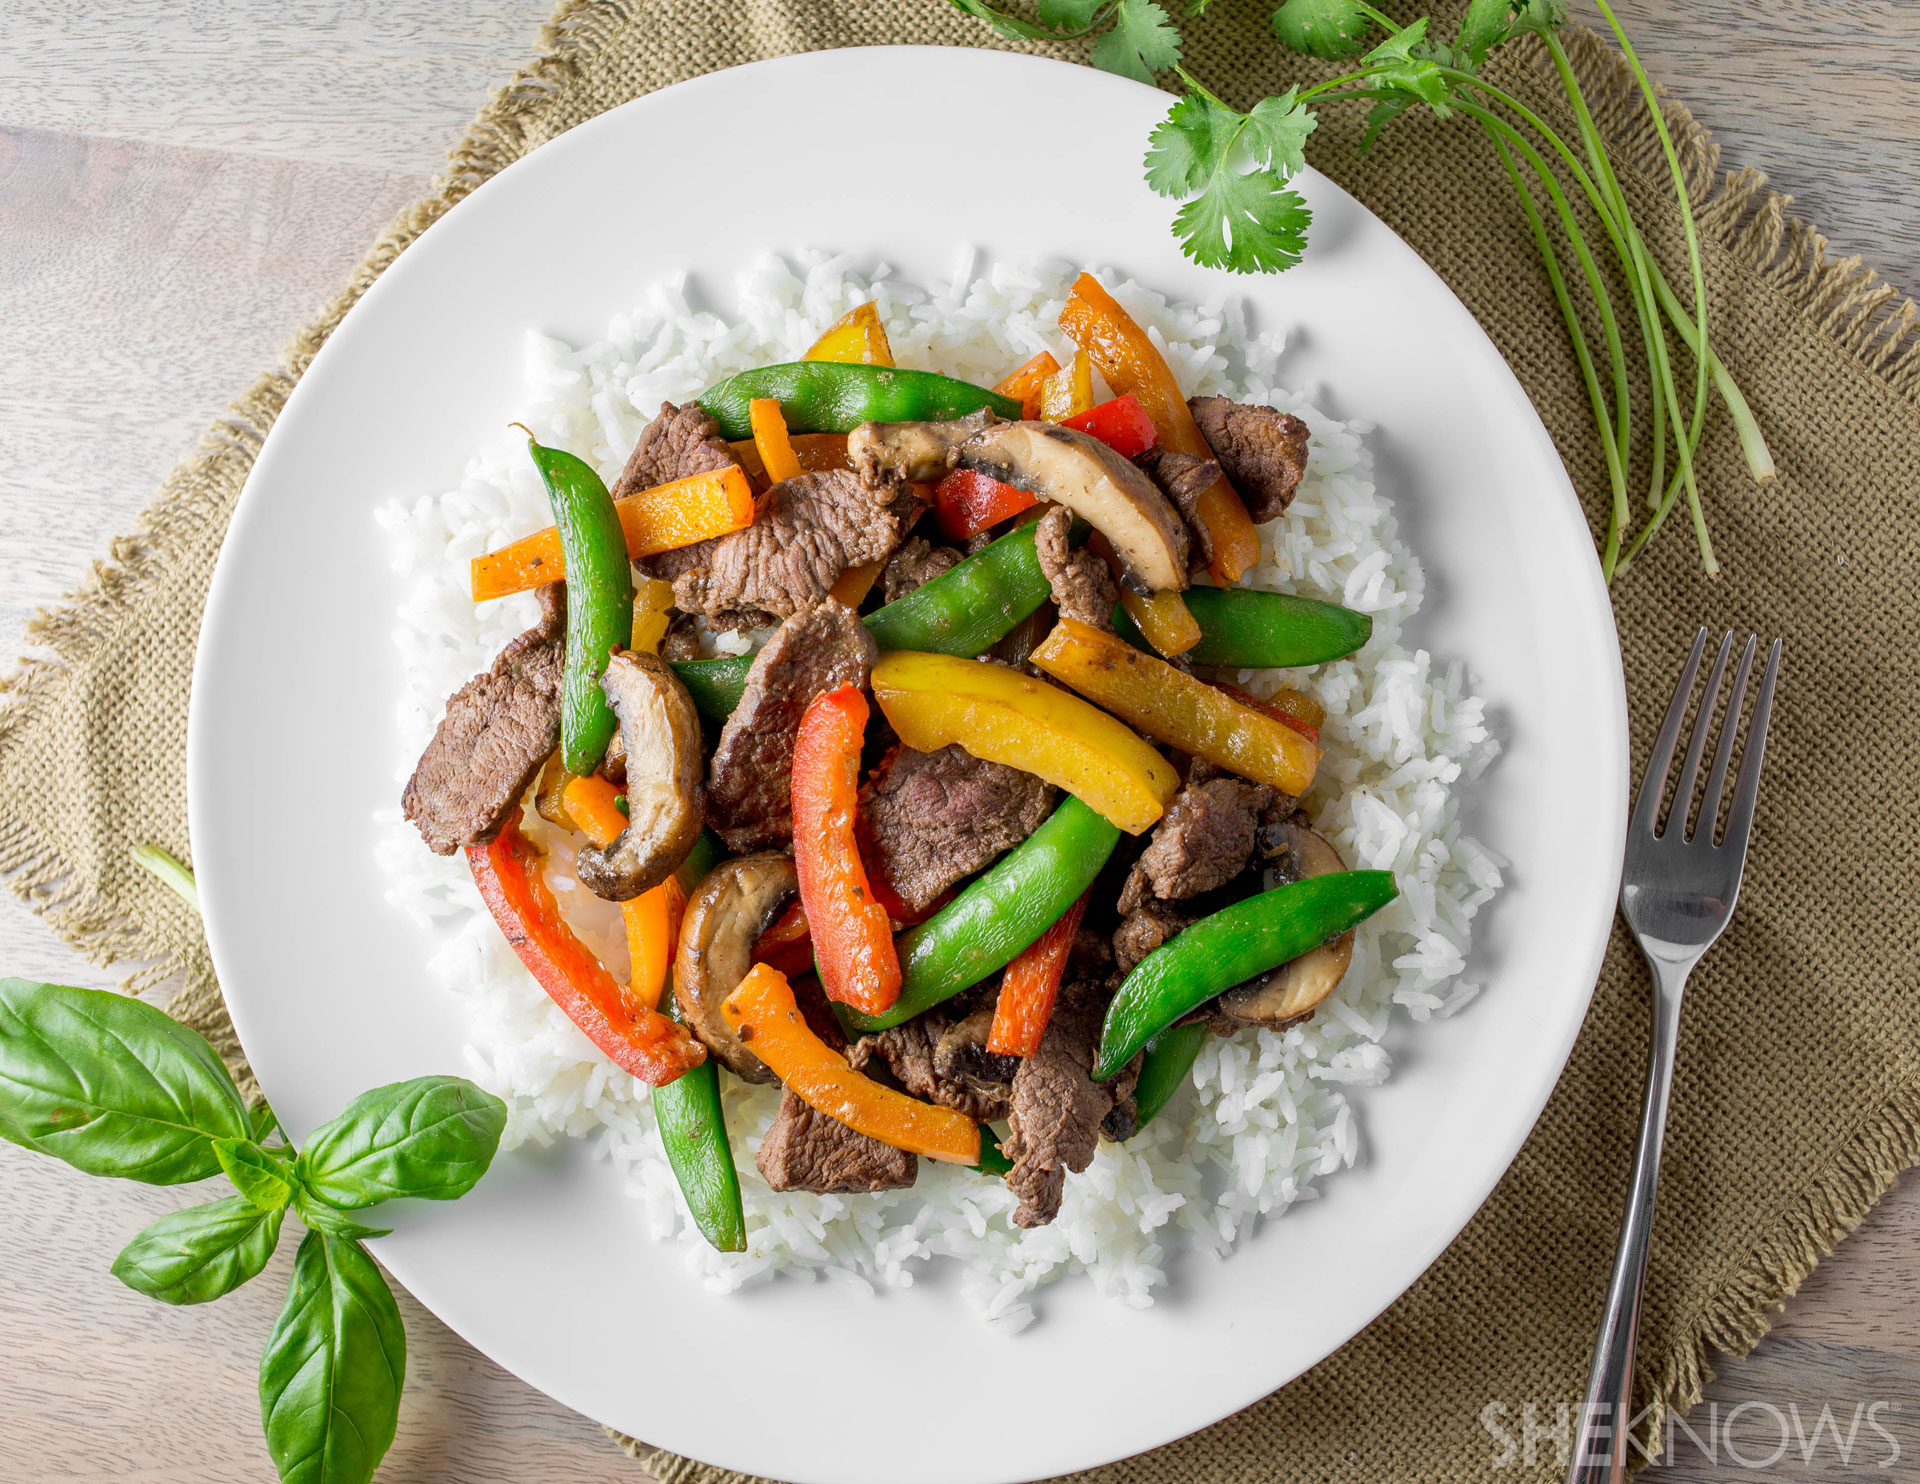 Organic beef and veggie stir fry l SheKnows